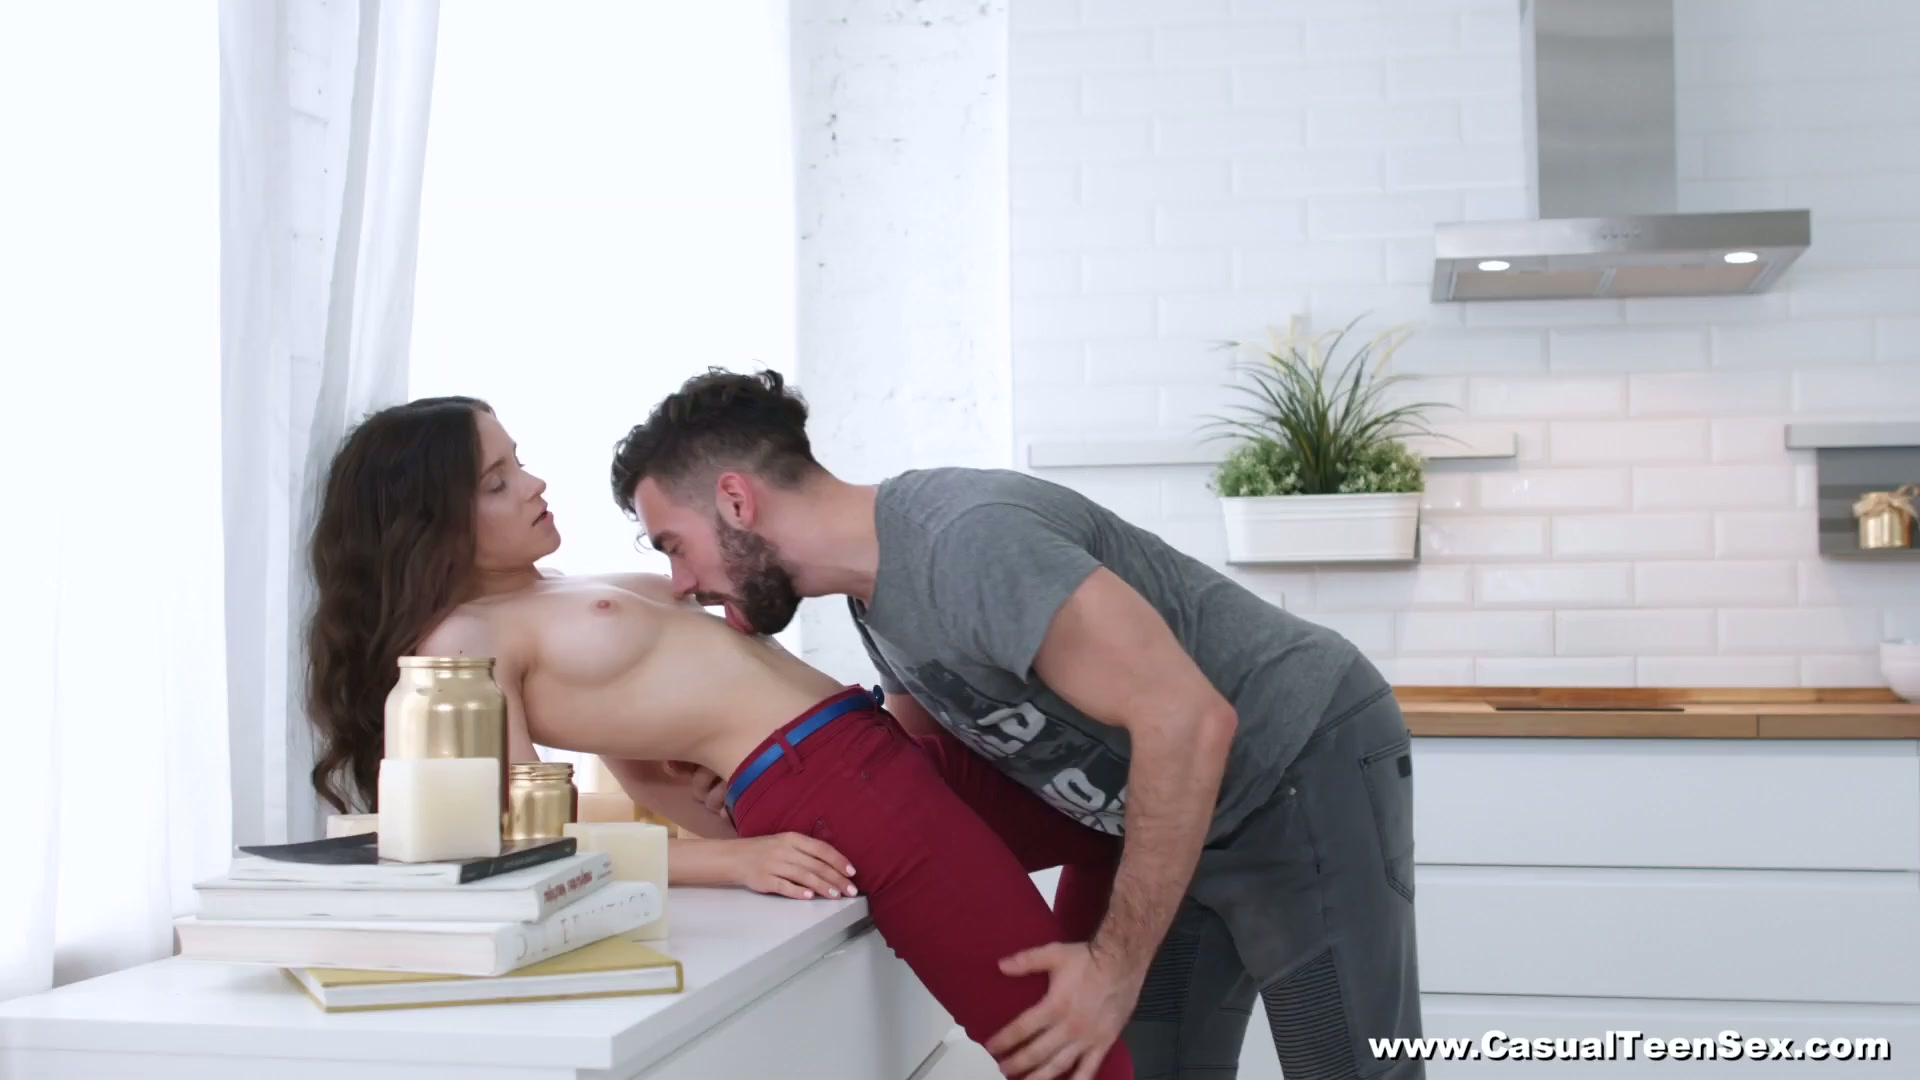 Charming girl Fox passionately rides fat cock right in the kitchen